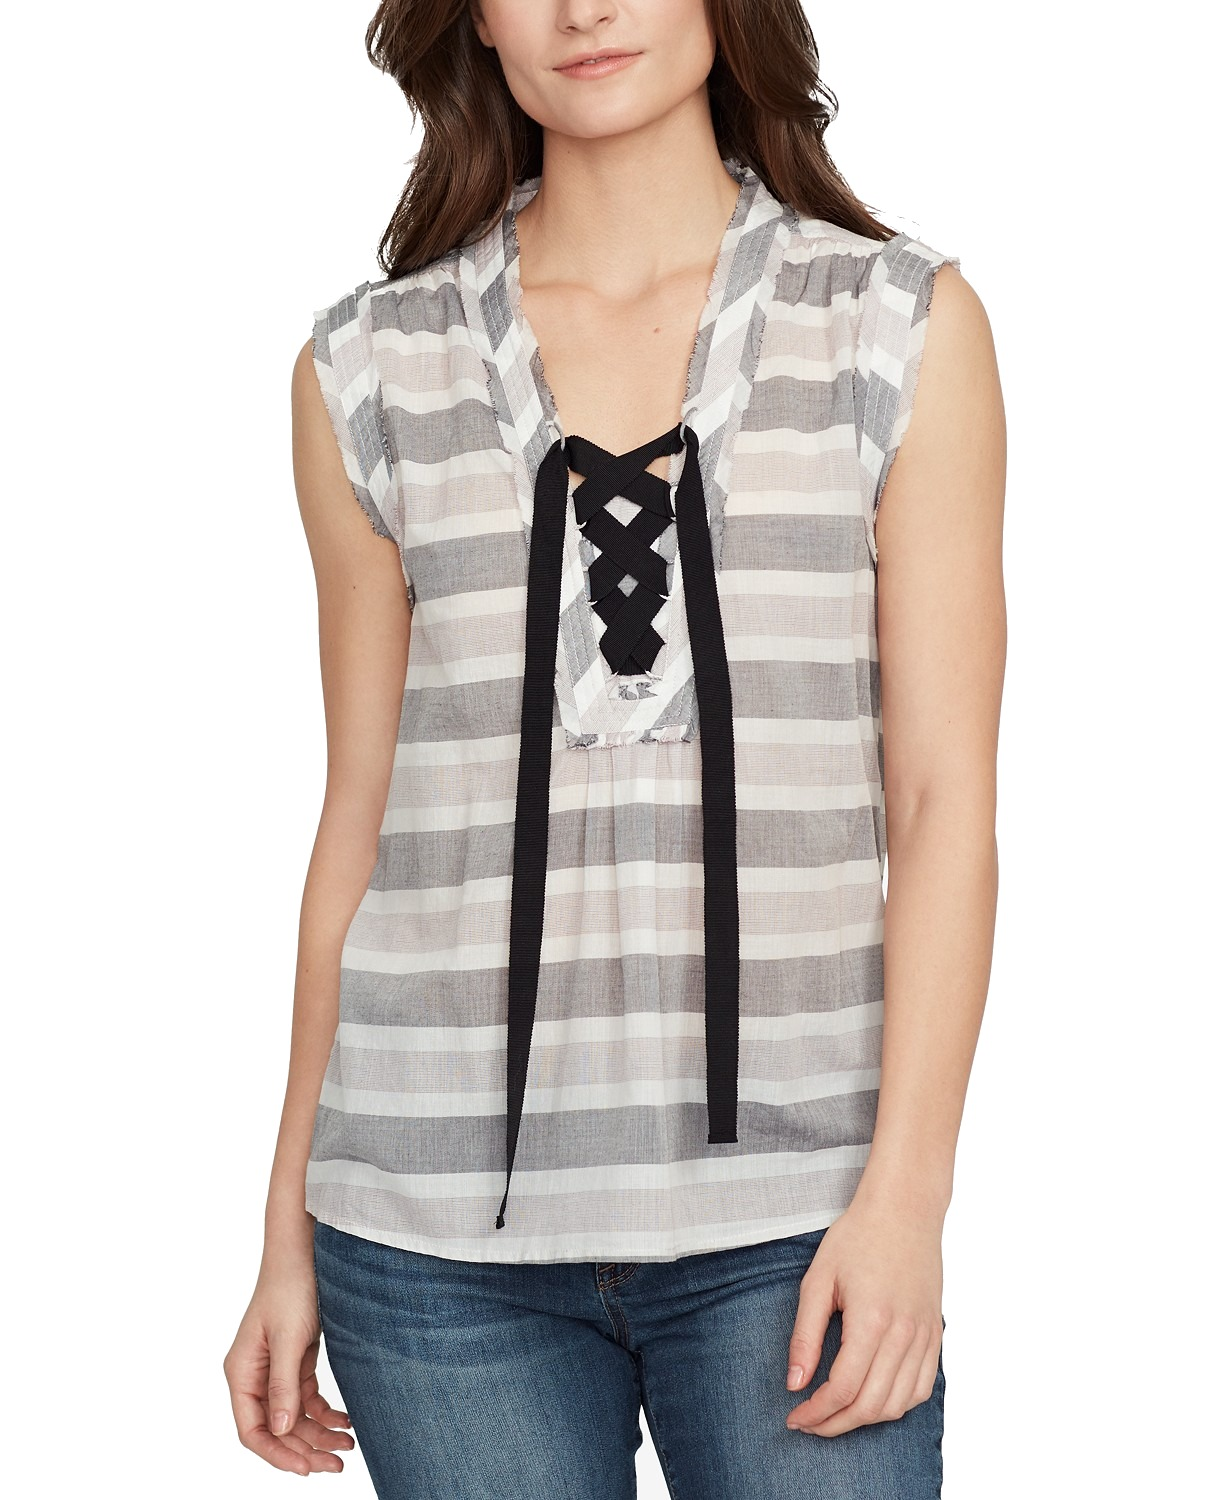 William-Rast-Women-039-s-Top-Blouse-Gray-Size-XXL-Lace-Up-Striped-Cotton